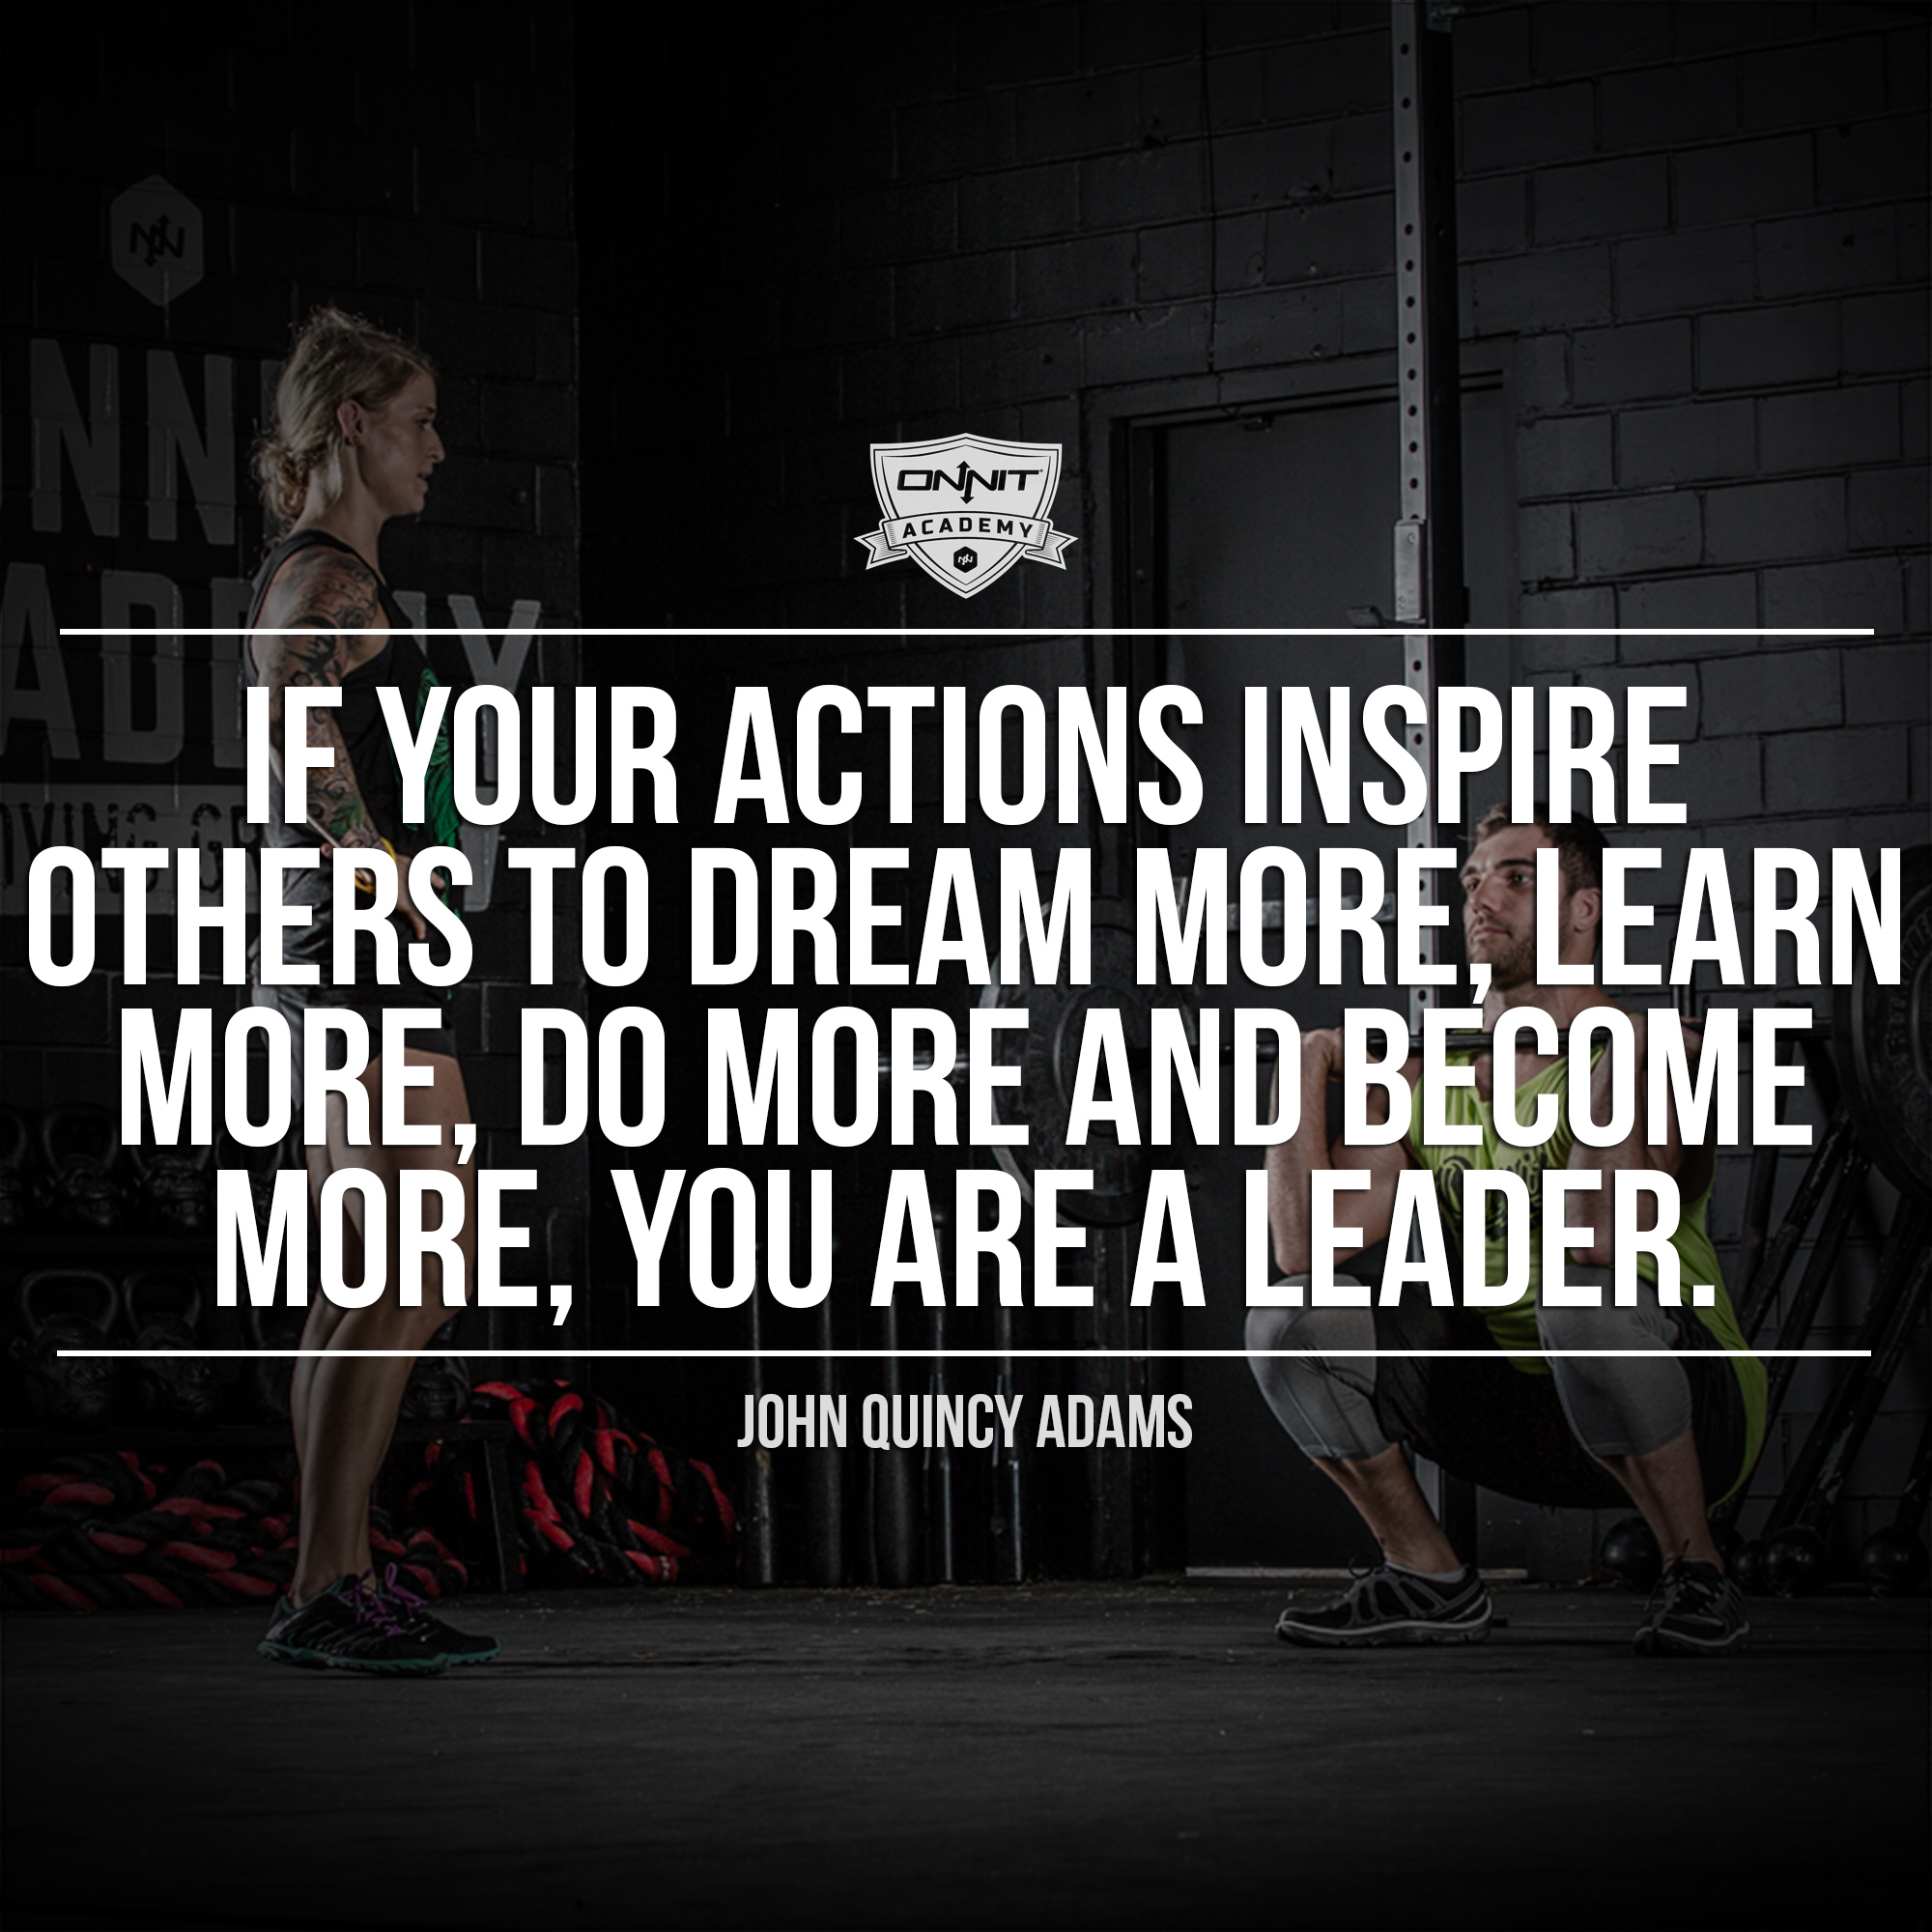 Diet Motivation Quotes Wallpaper Workout Motivation If Your Actions Inspire Others Onnit